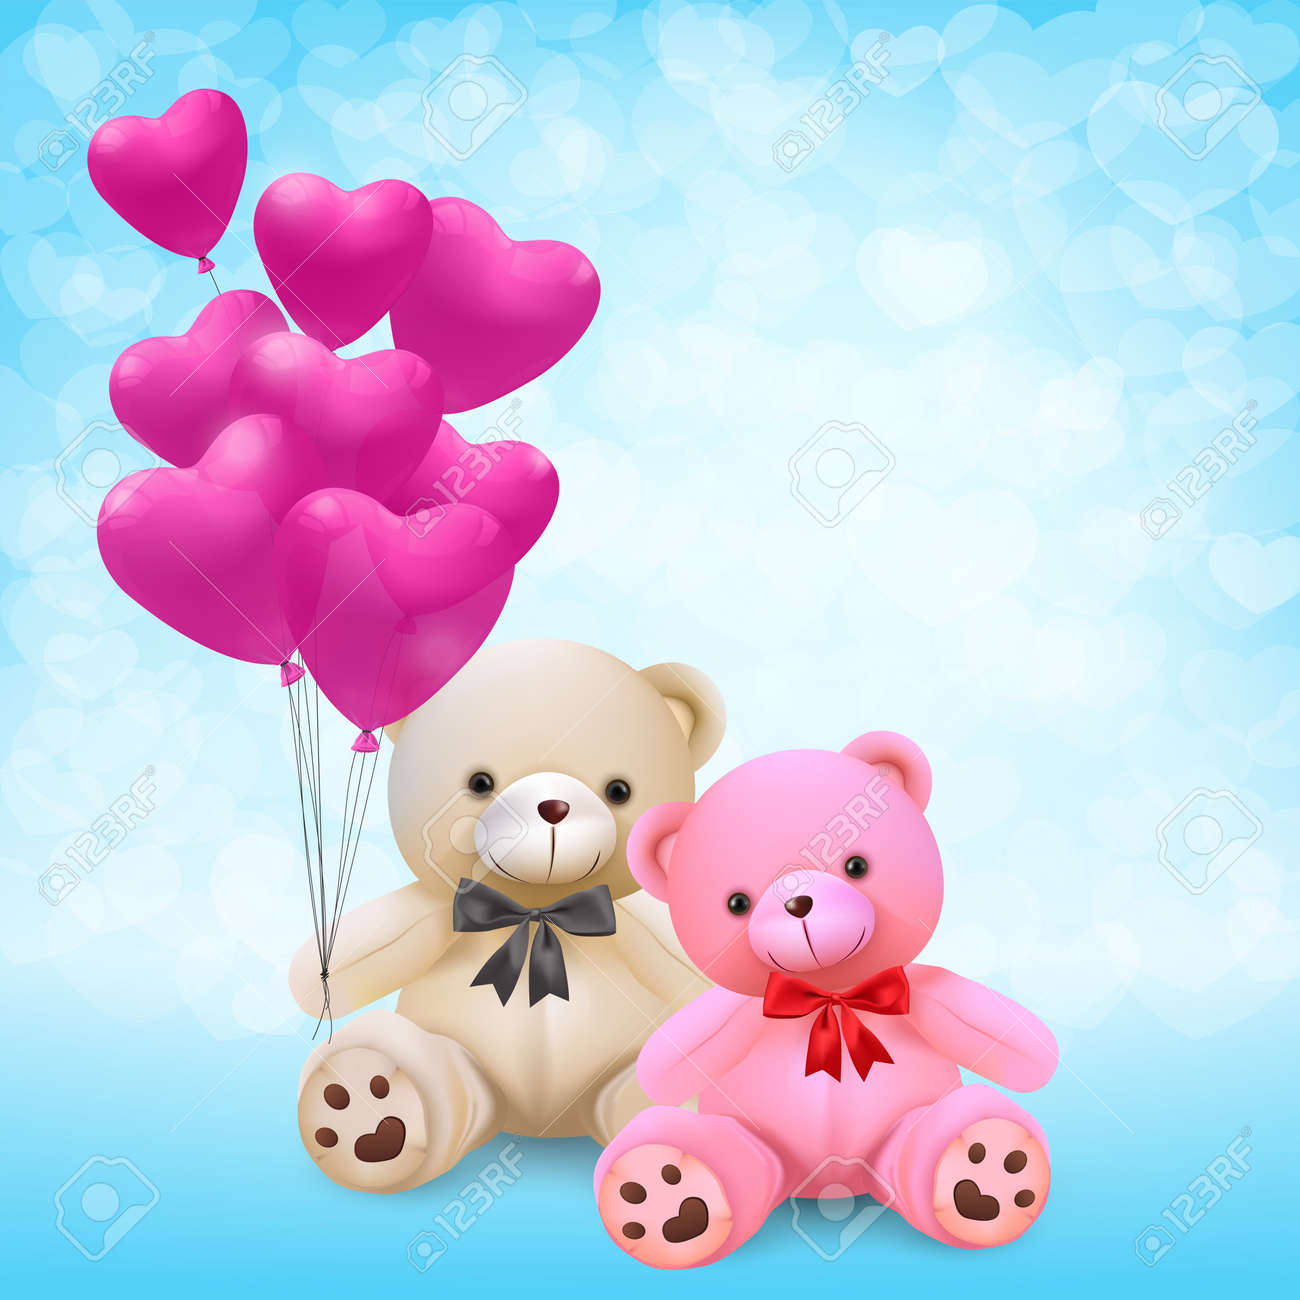 Cute teddy bear holding pink heart balloons - vector and illustration. - 93216680